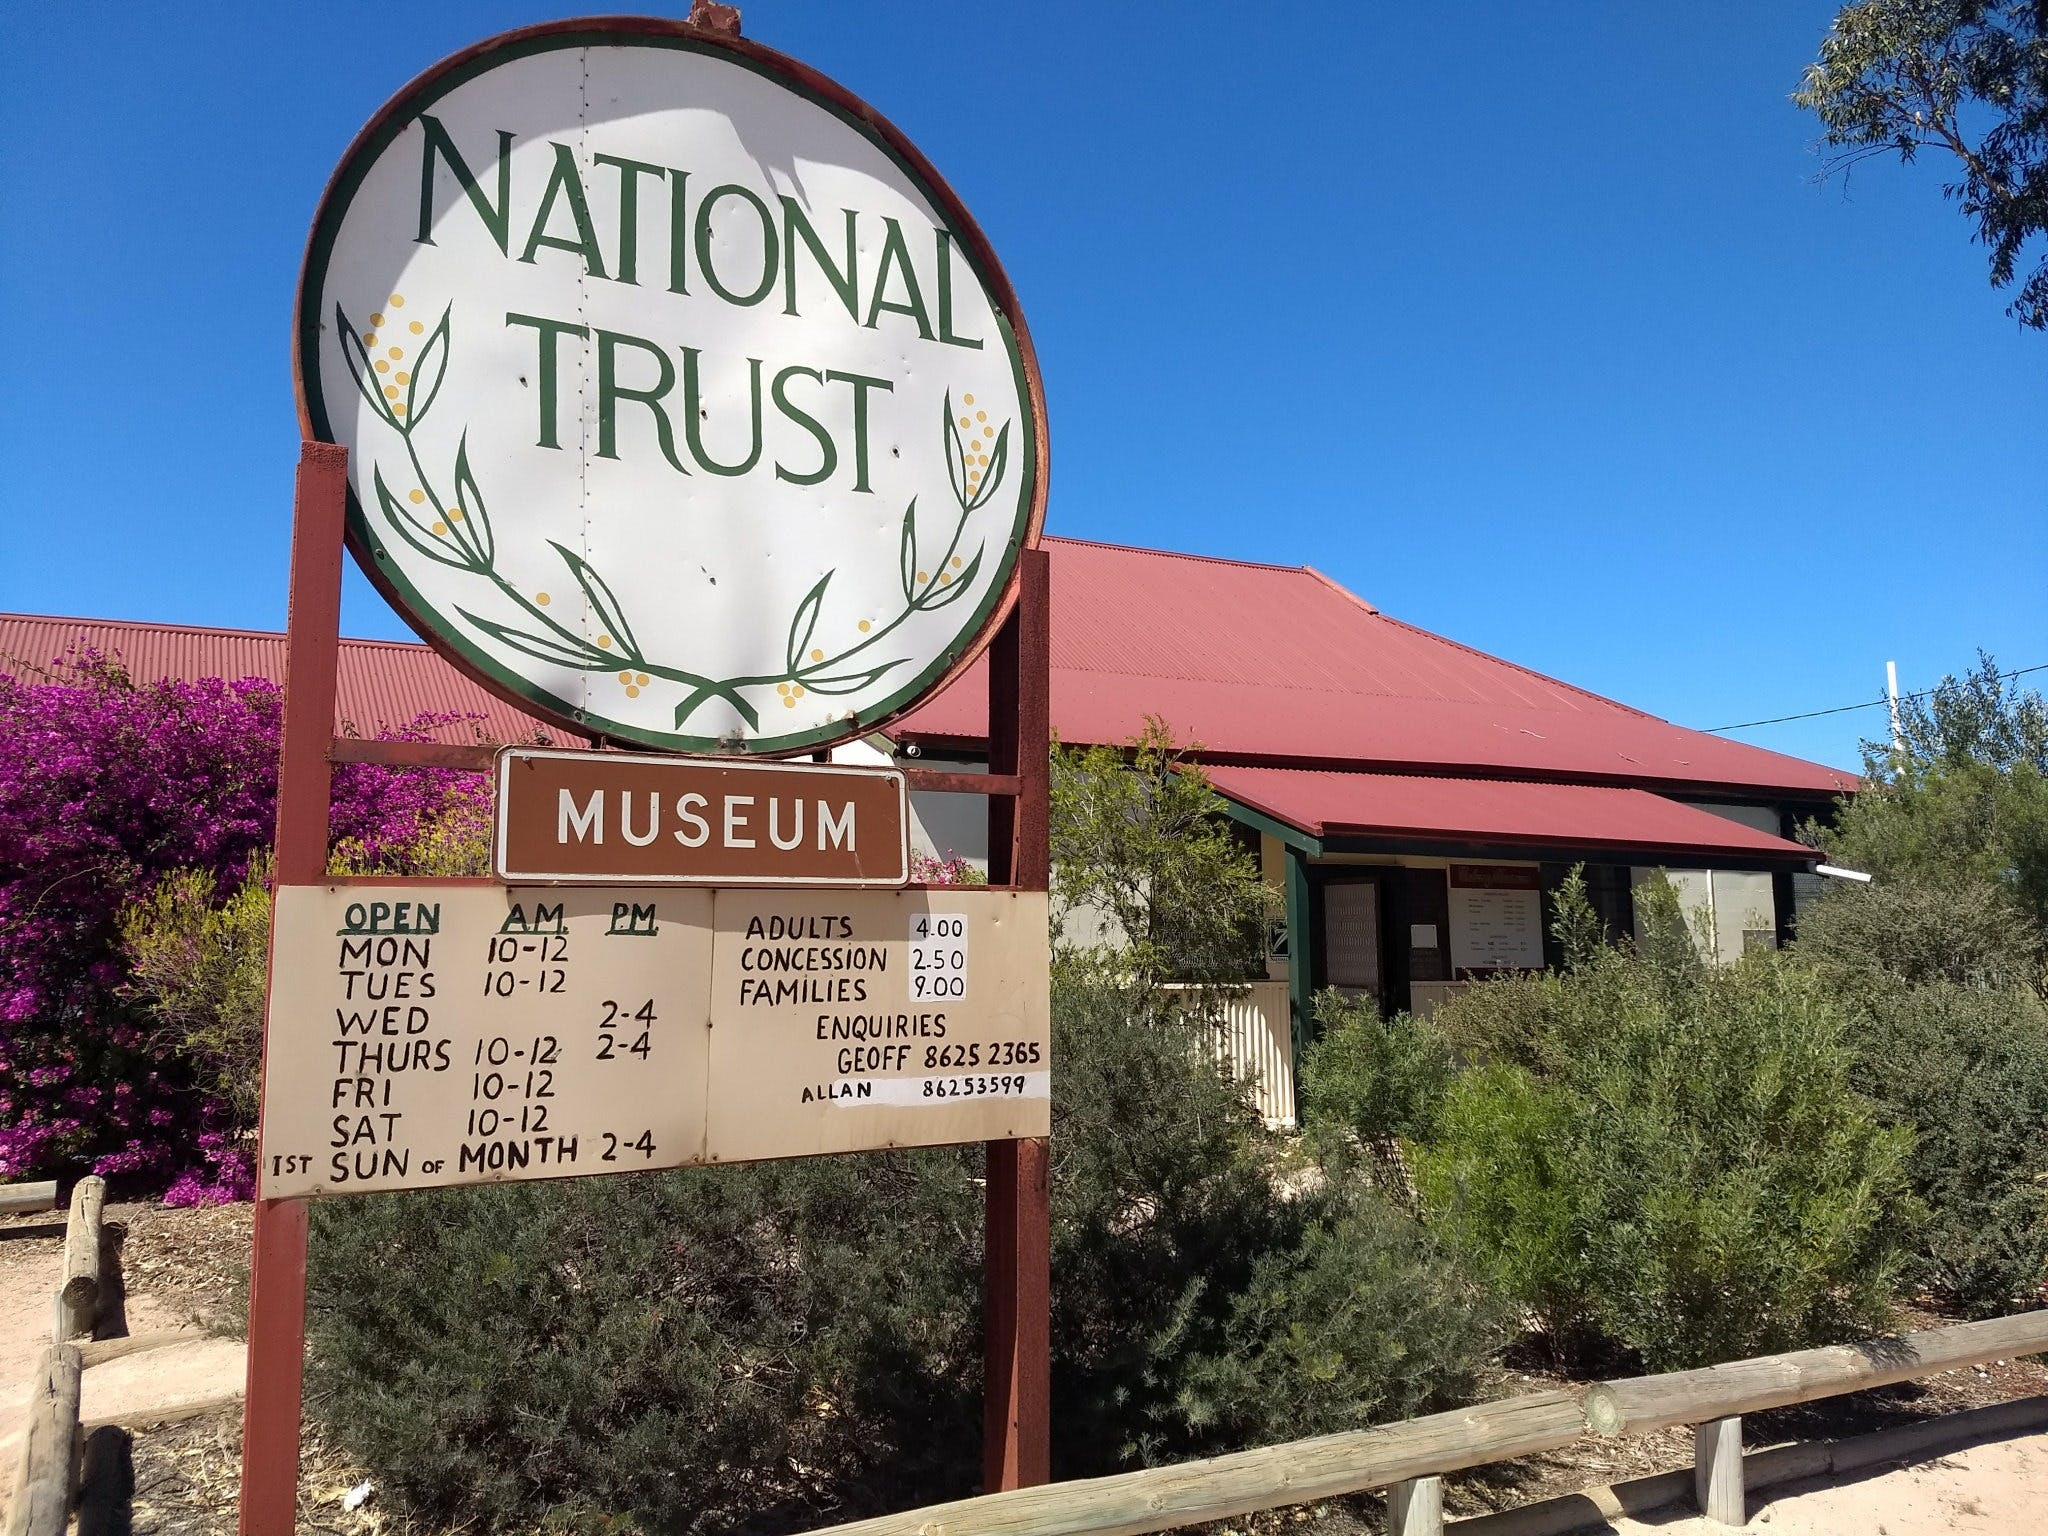 Ceduna National Trust Musuem - Wagga Wagga Accommodation